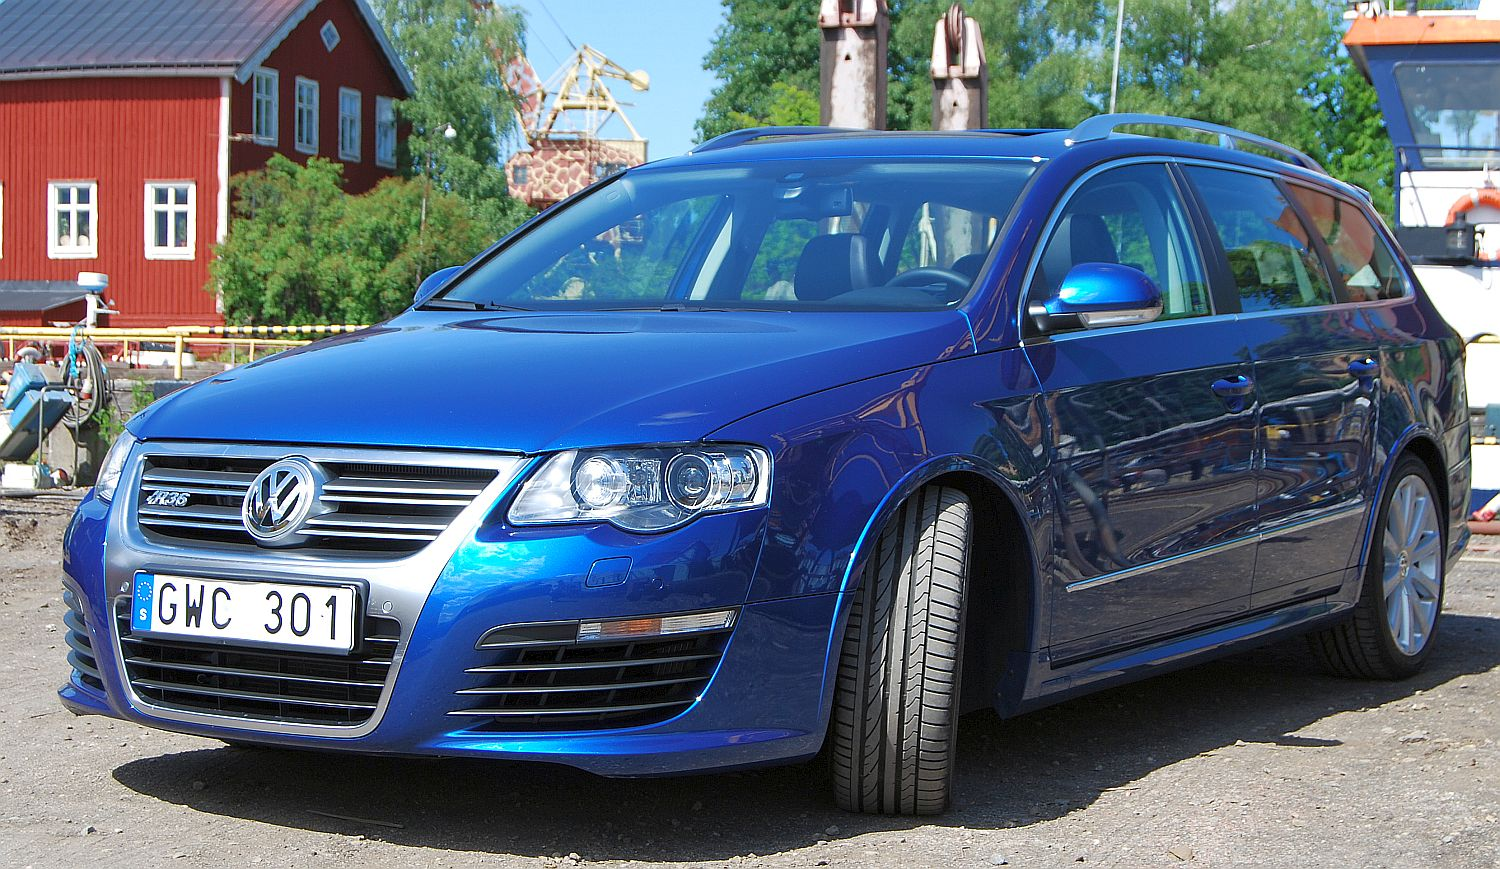 volkswagen passat r36 images details techbolts. Black Bedroom Furniture Sets. Home Design Ideas